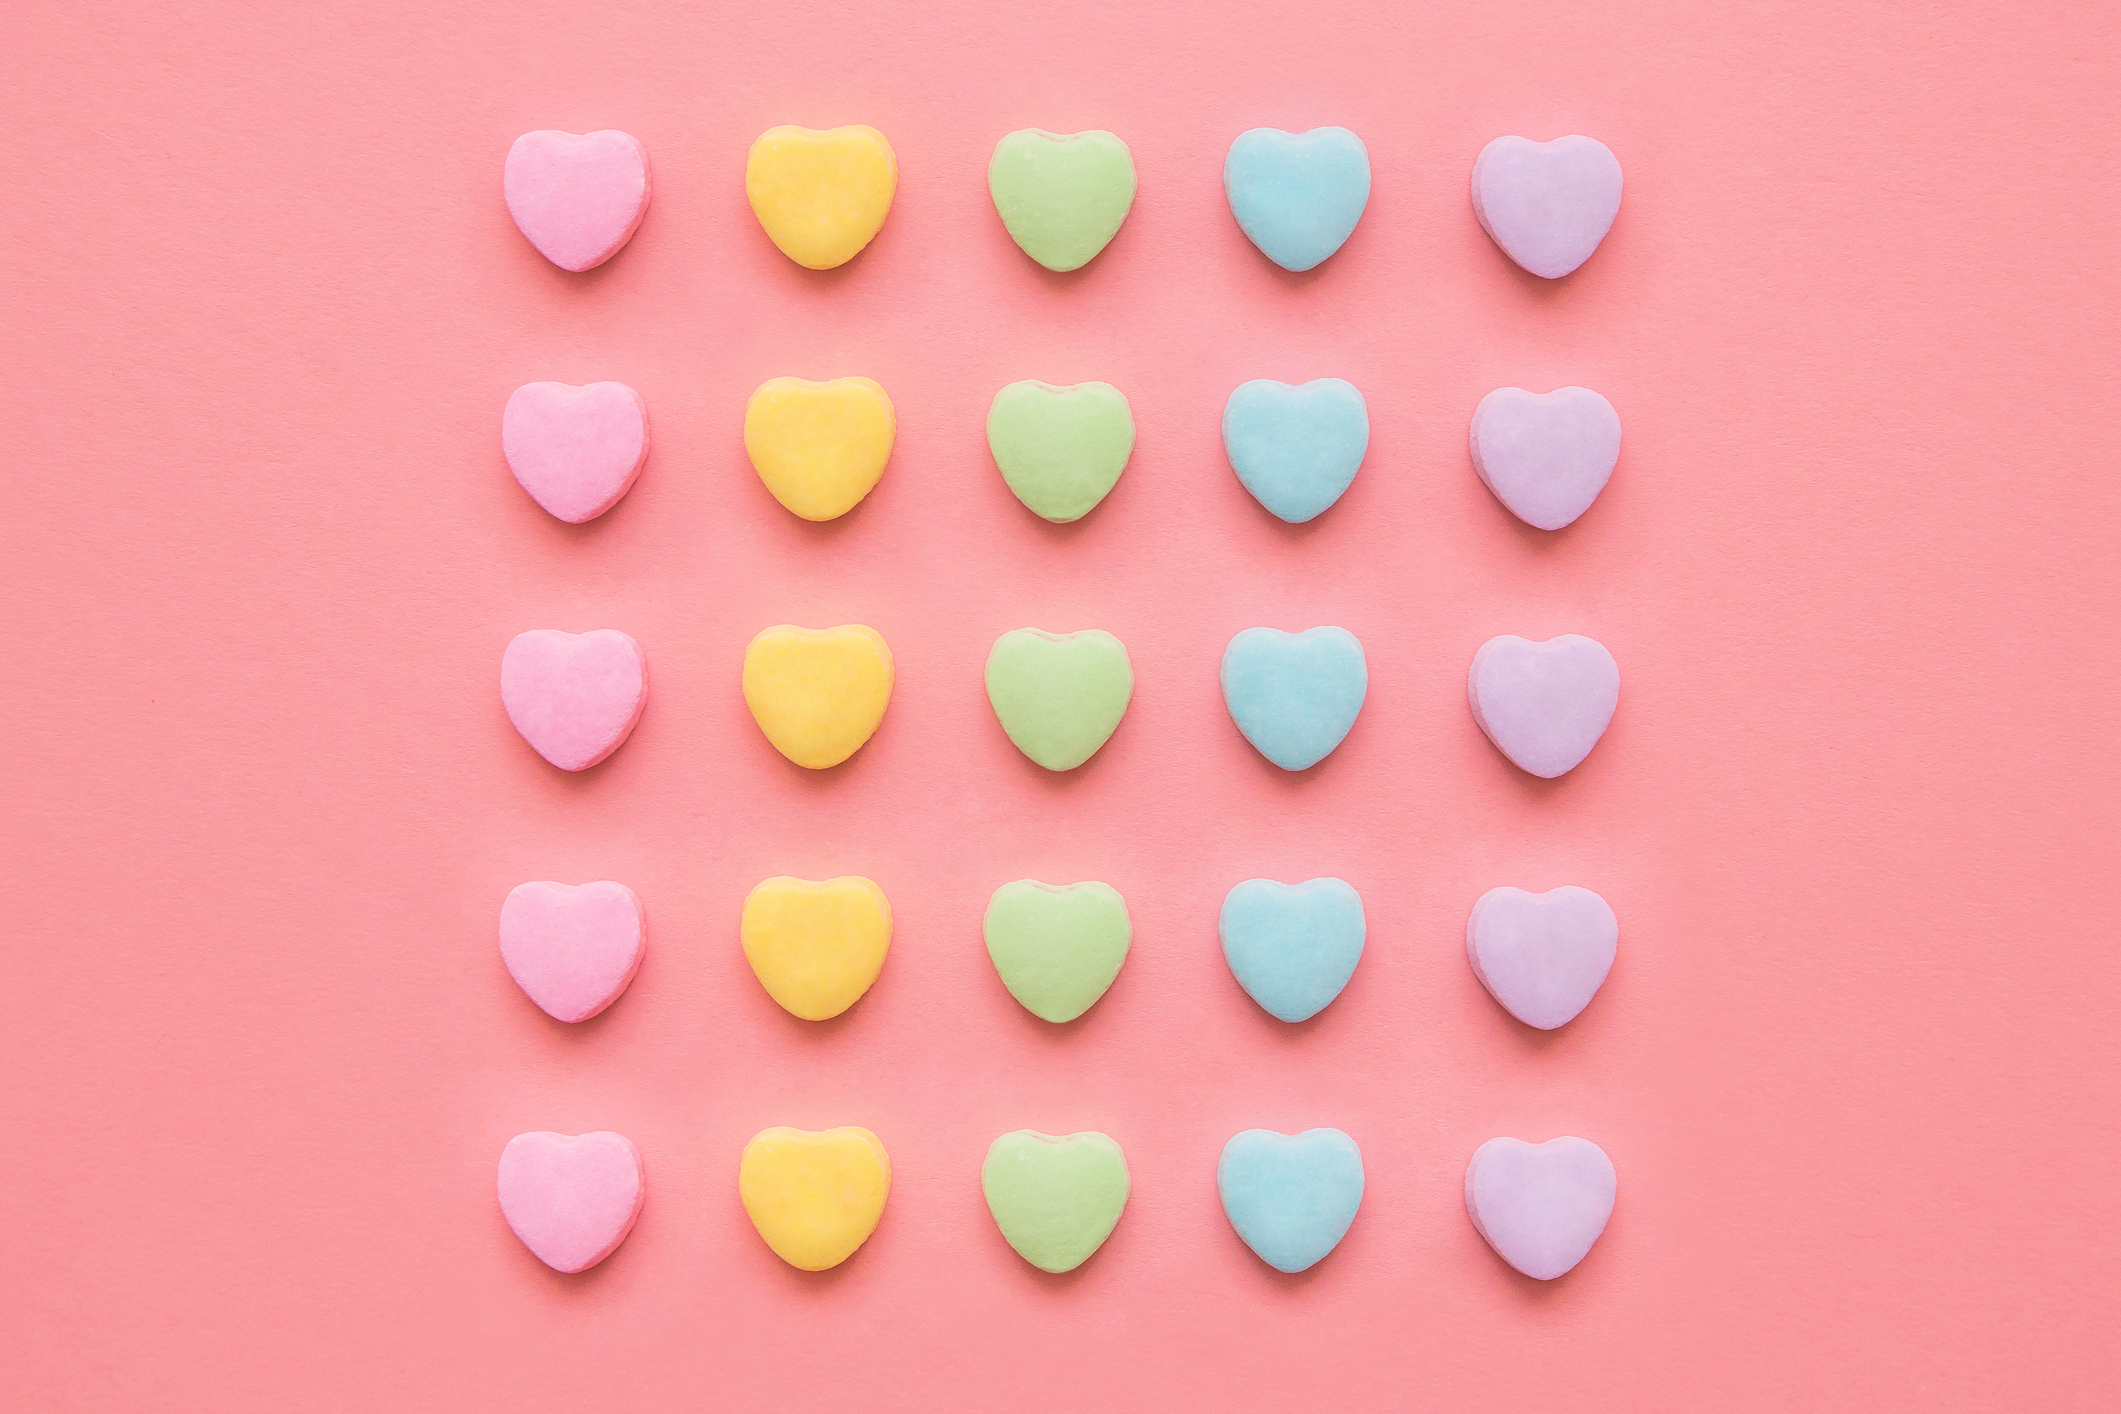 Love hearts background. Candy hearts on a pink background for Valentine's Day or anytime. Conceptual image to symbolism dating, marriage and/or equality, gay pride, or OCD and order.